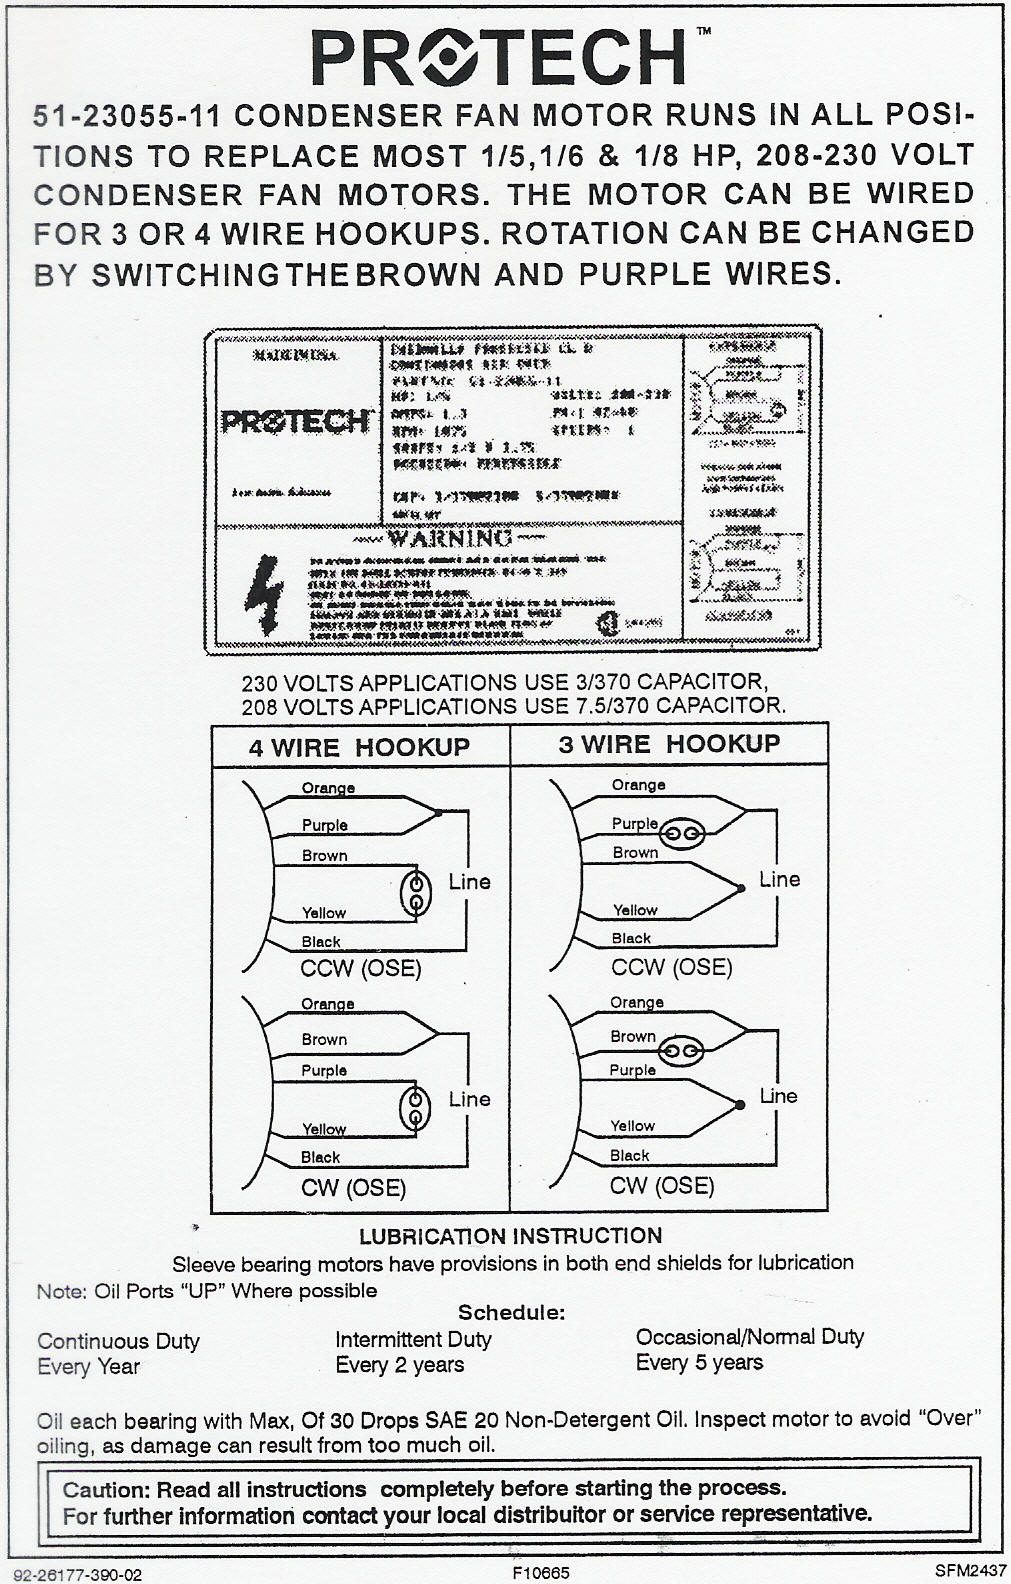 51 23055 11 wiring diagram rheem ruud condenser fan motor 51 23055 11 wiring diagram Basic Electrical Wiring Diagrams at crackthecode.co